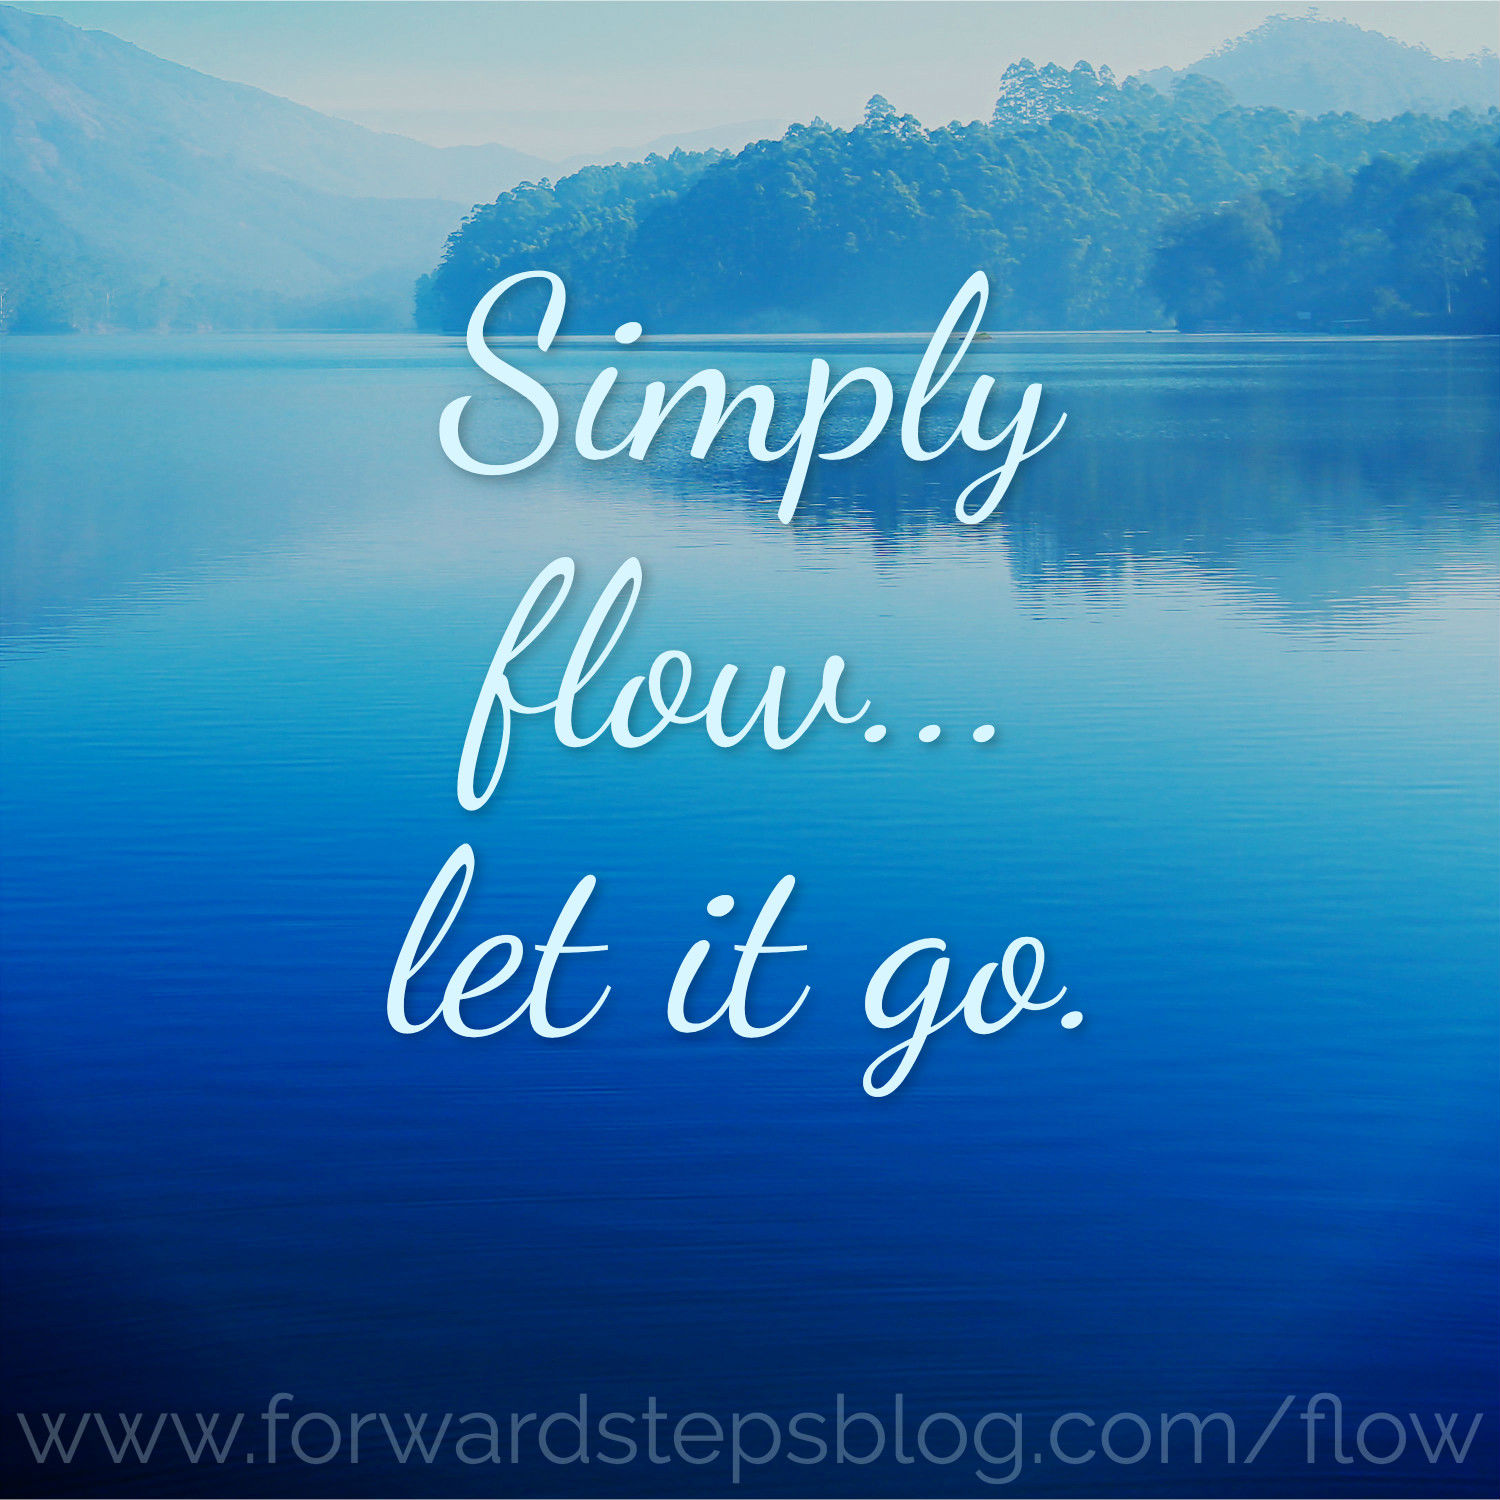 Simply flow - Forward Steps image_8